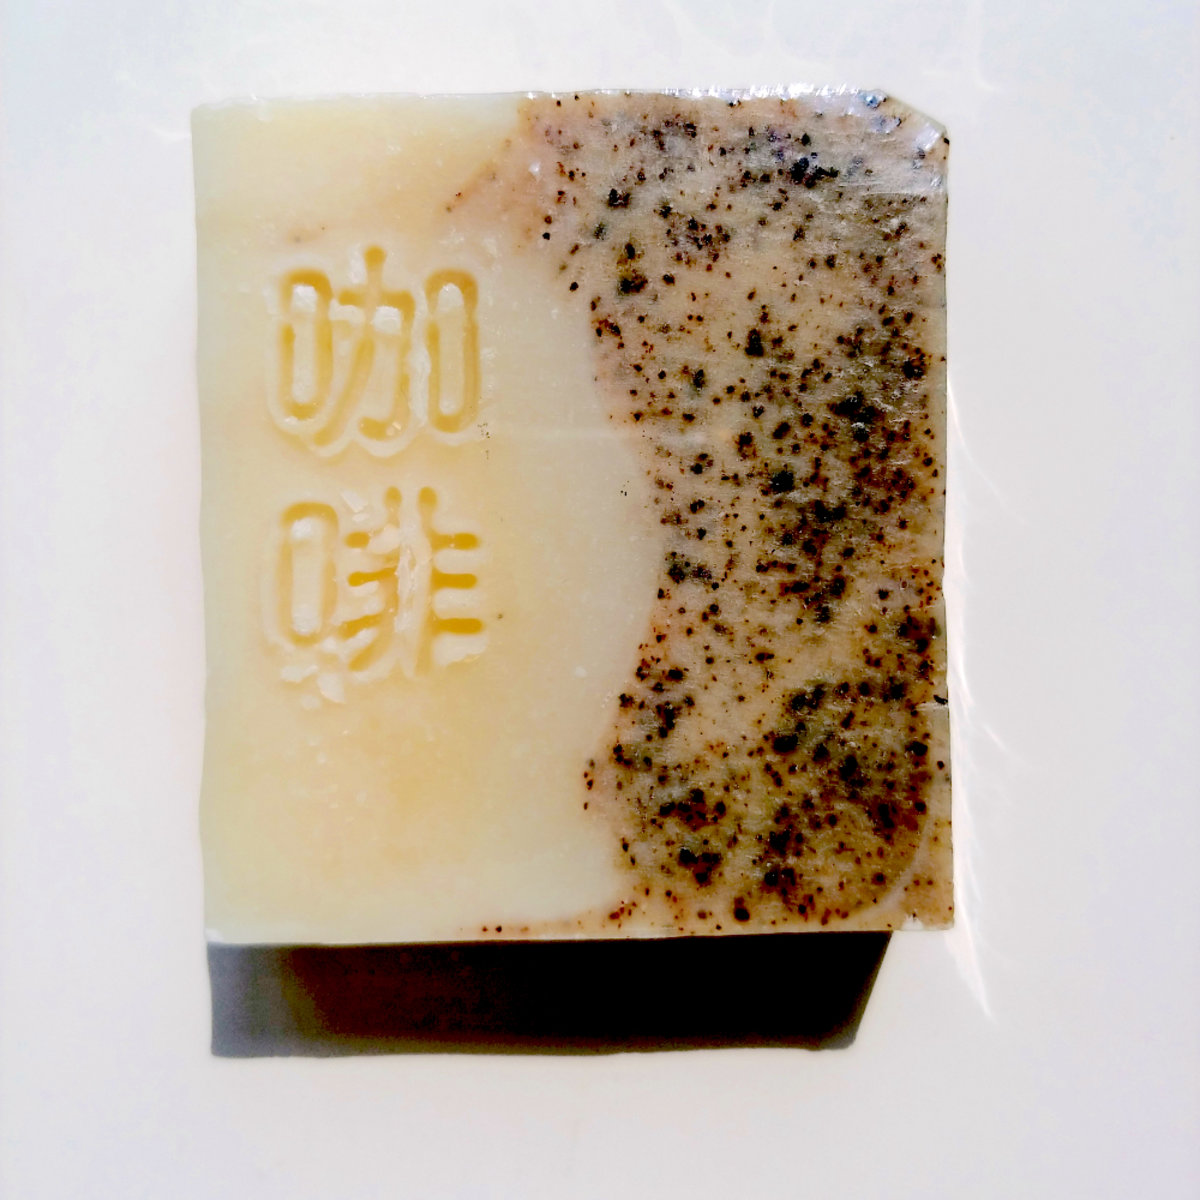 Coffee Infused Anti-Odor Multipurpose Plant Based Soap Handmade by Local Disabled Artisans